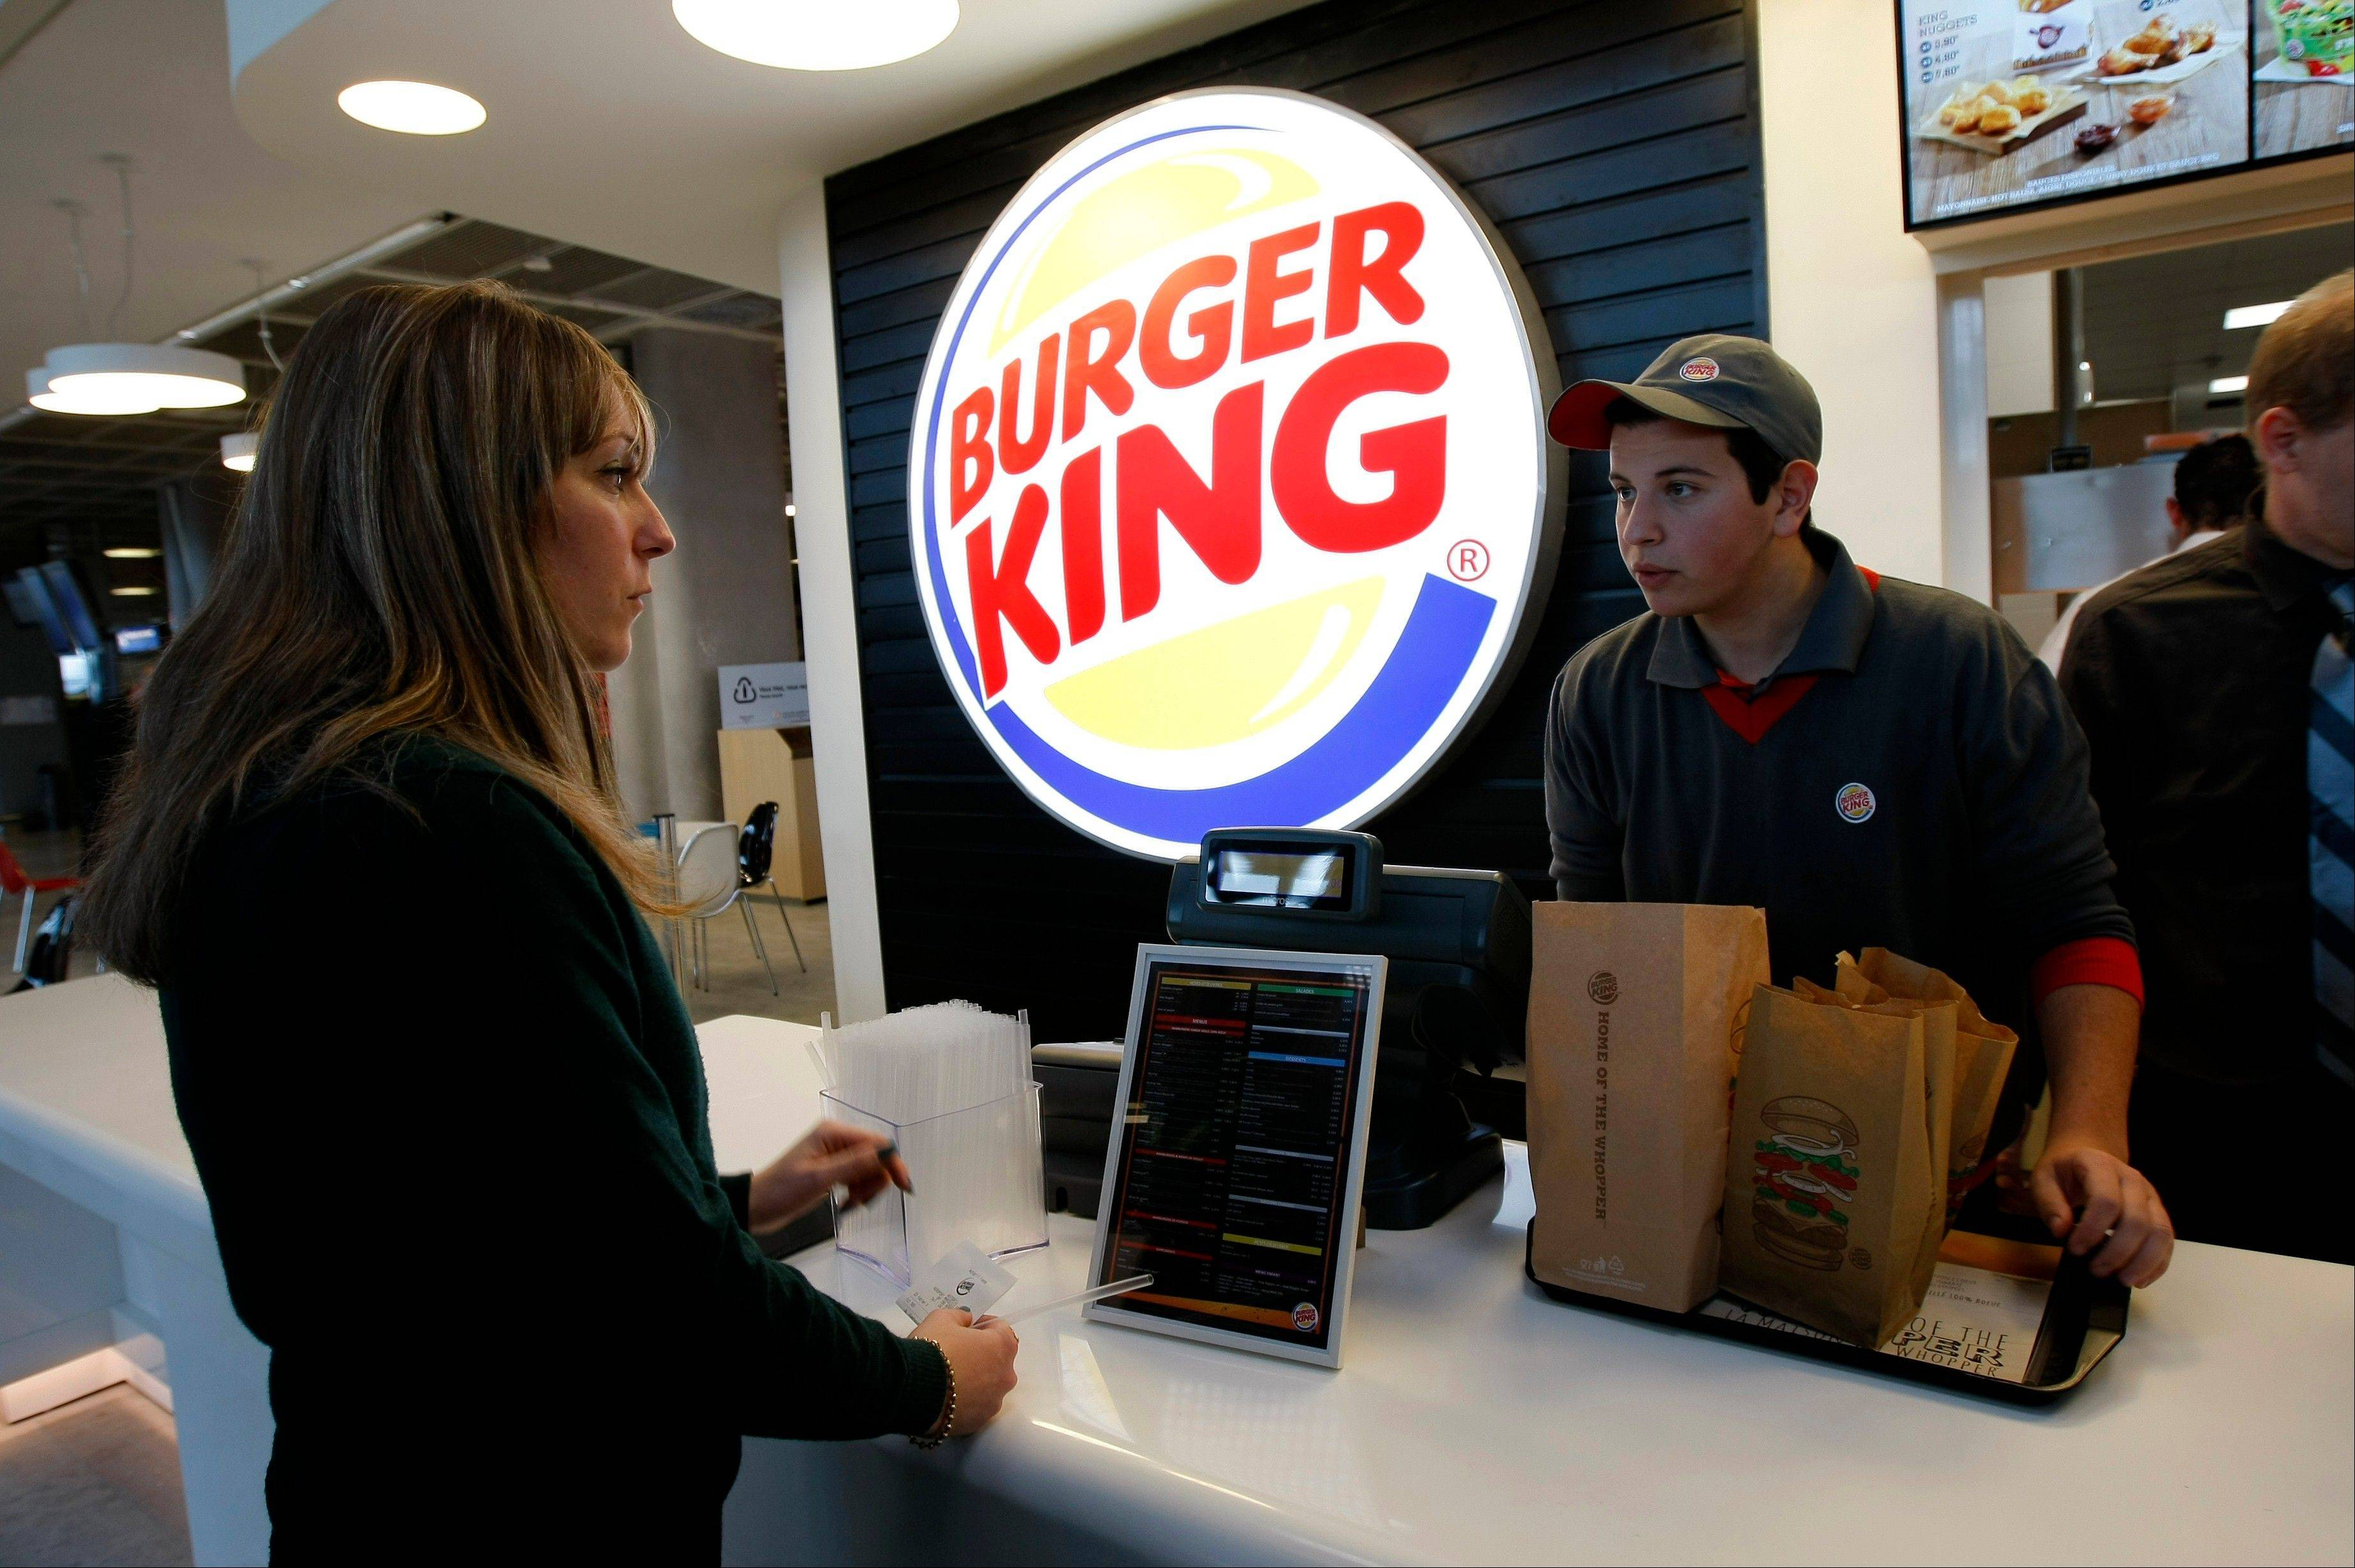 A customer purchases a meal at a Burger King restaurant Saturday in Marseille-Provence airport, in Marignane, France.